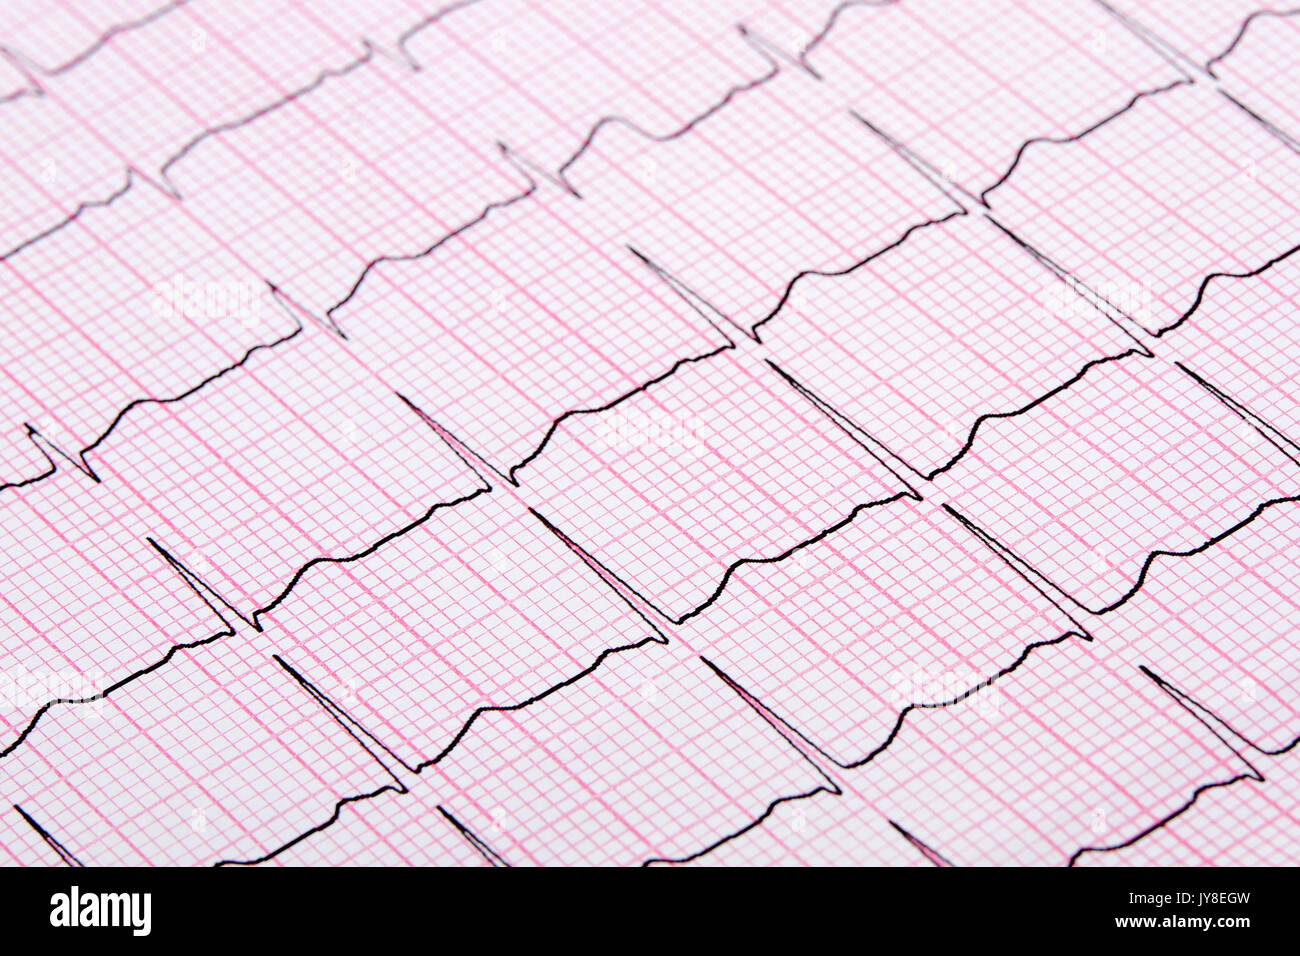 Close up of a Electrocardiograph also known as a EKG or ECG graph - Stock Image